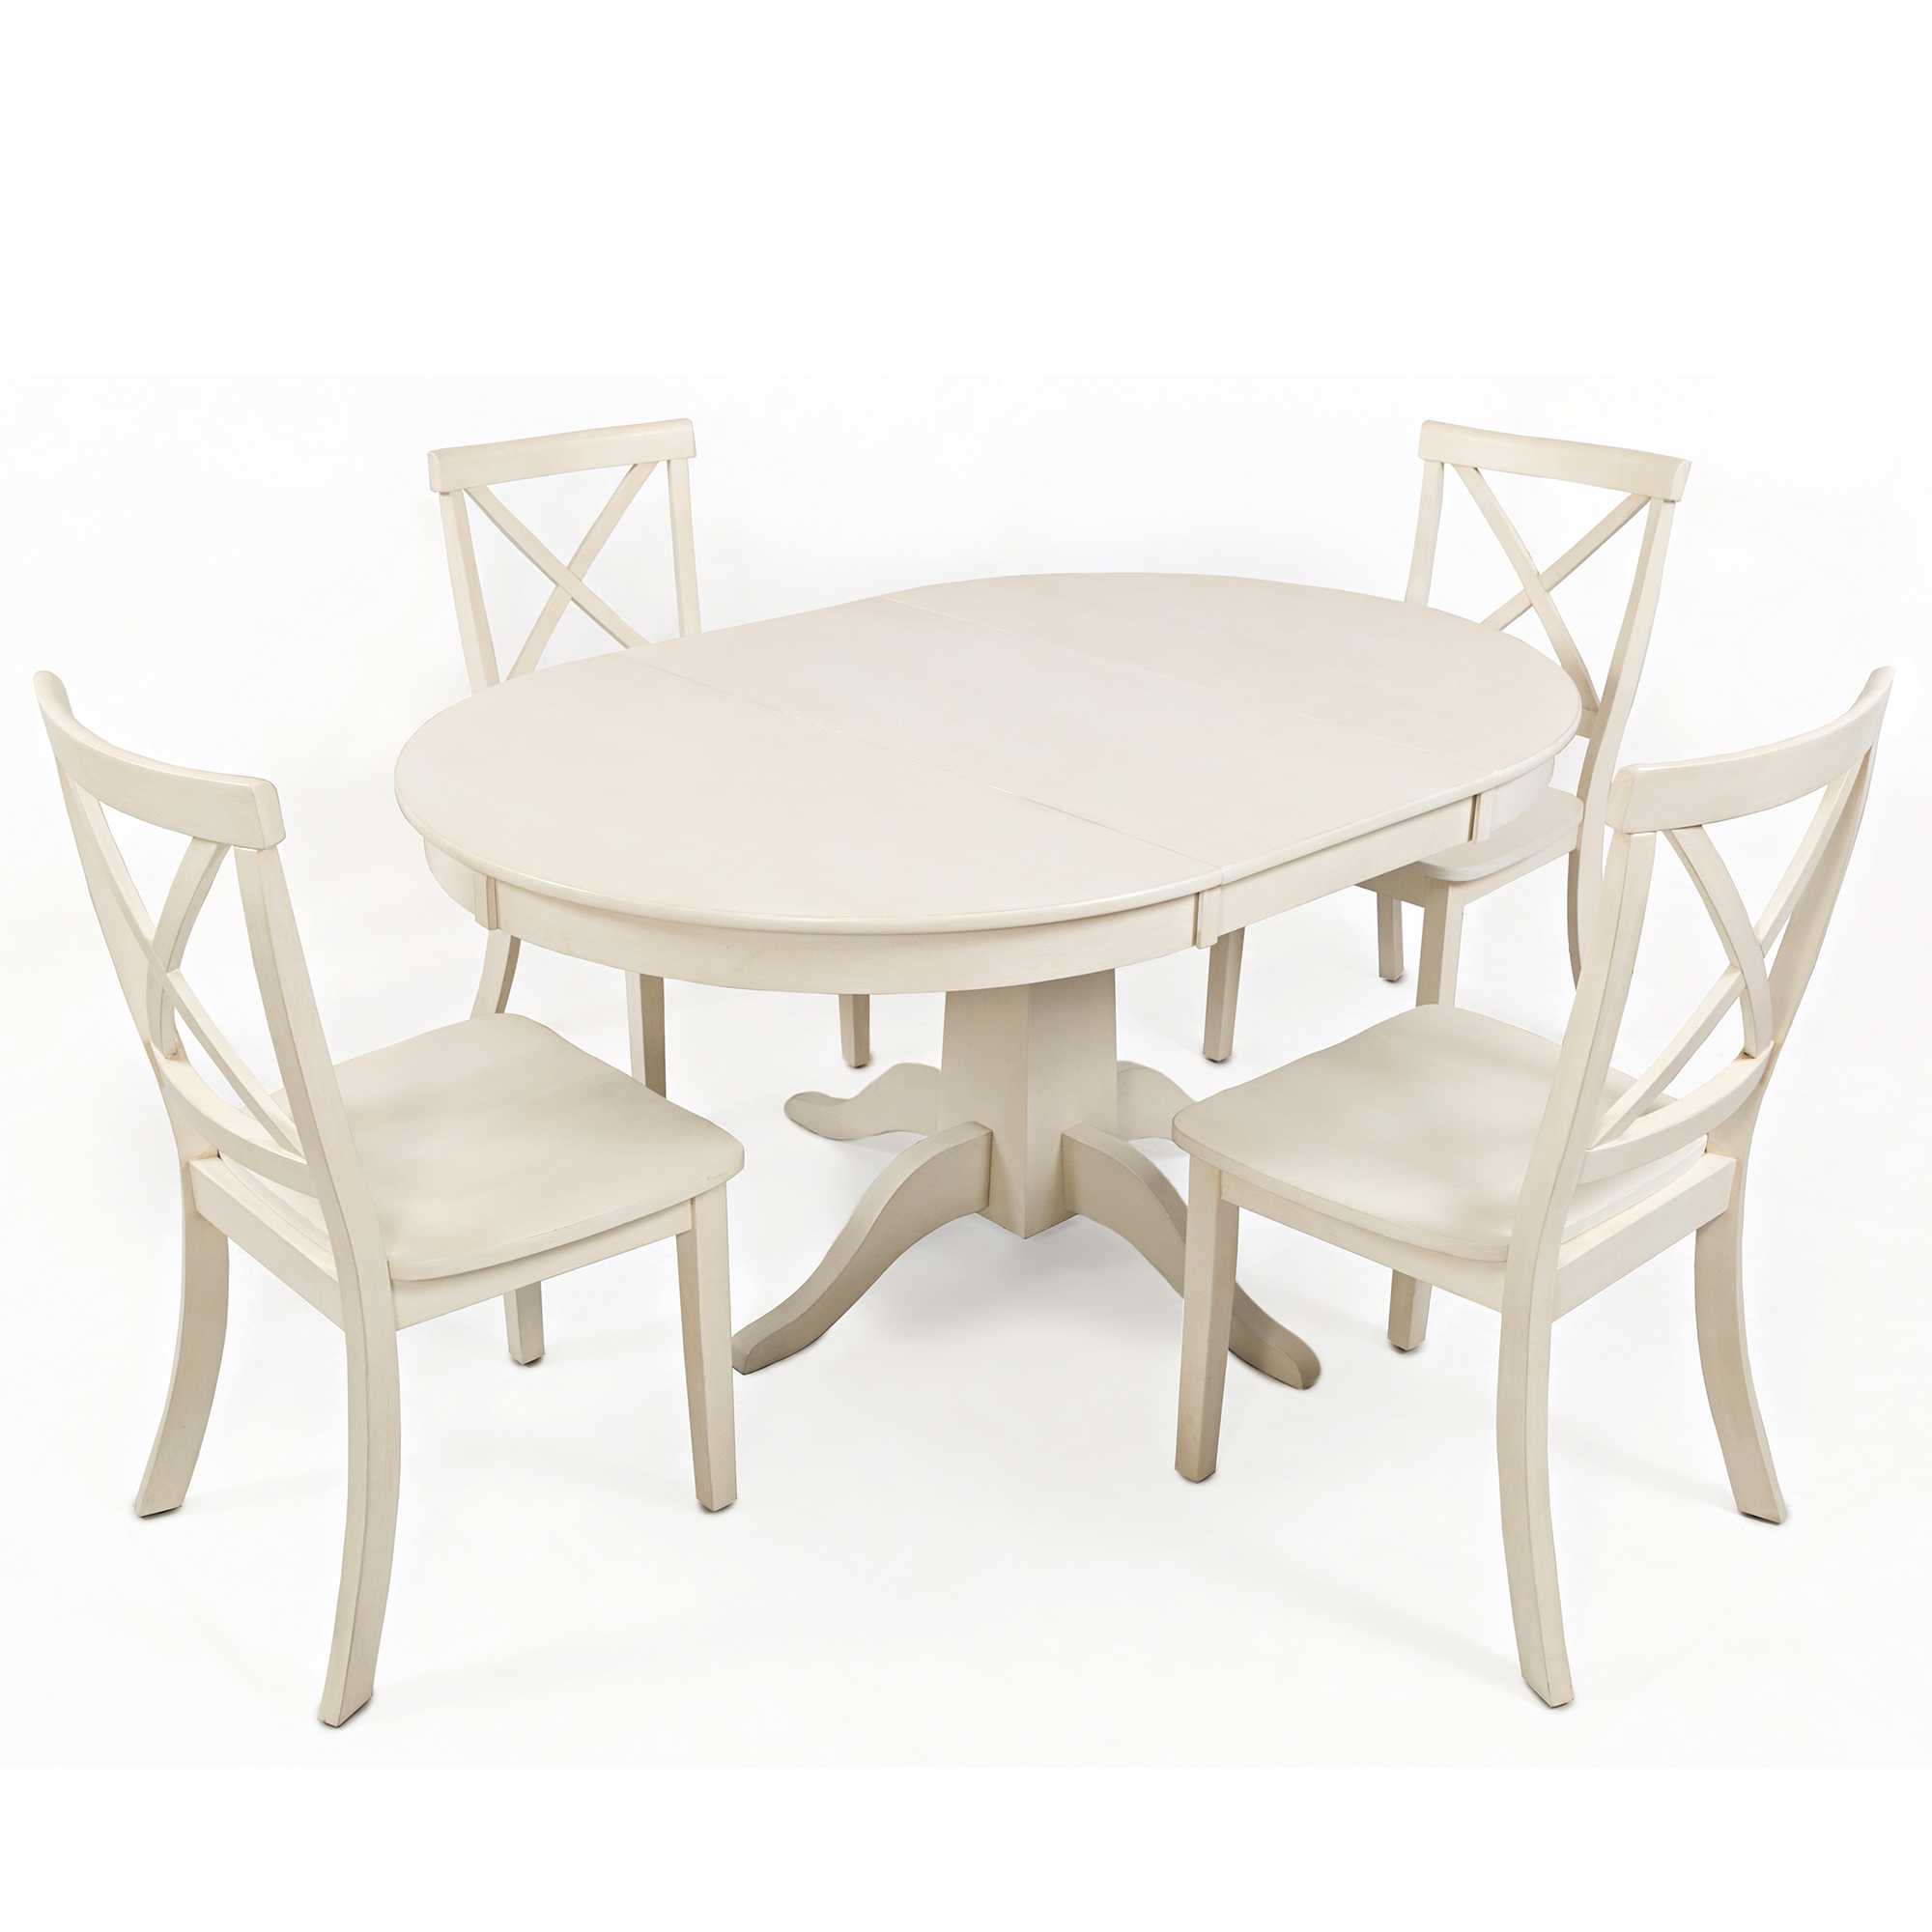 Terrific Everyday Classics Round To Oval Dining Table W 4 X Back Chairs In Linen By Jofran Andrewgaddart Wooden Chair Designs For Living Room Andrewgaddartcom